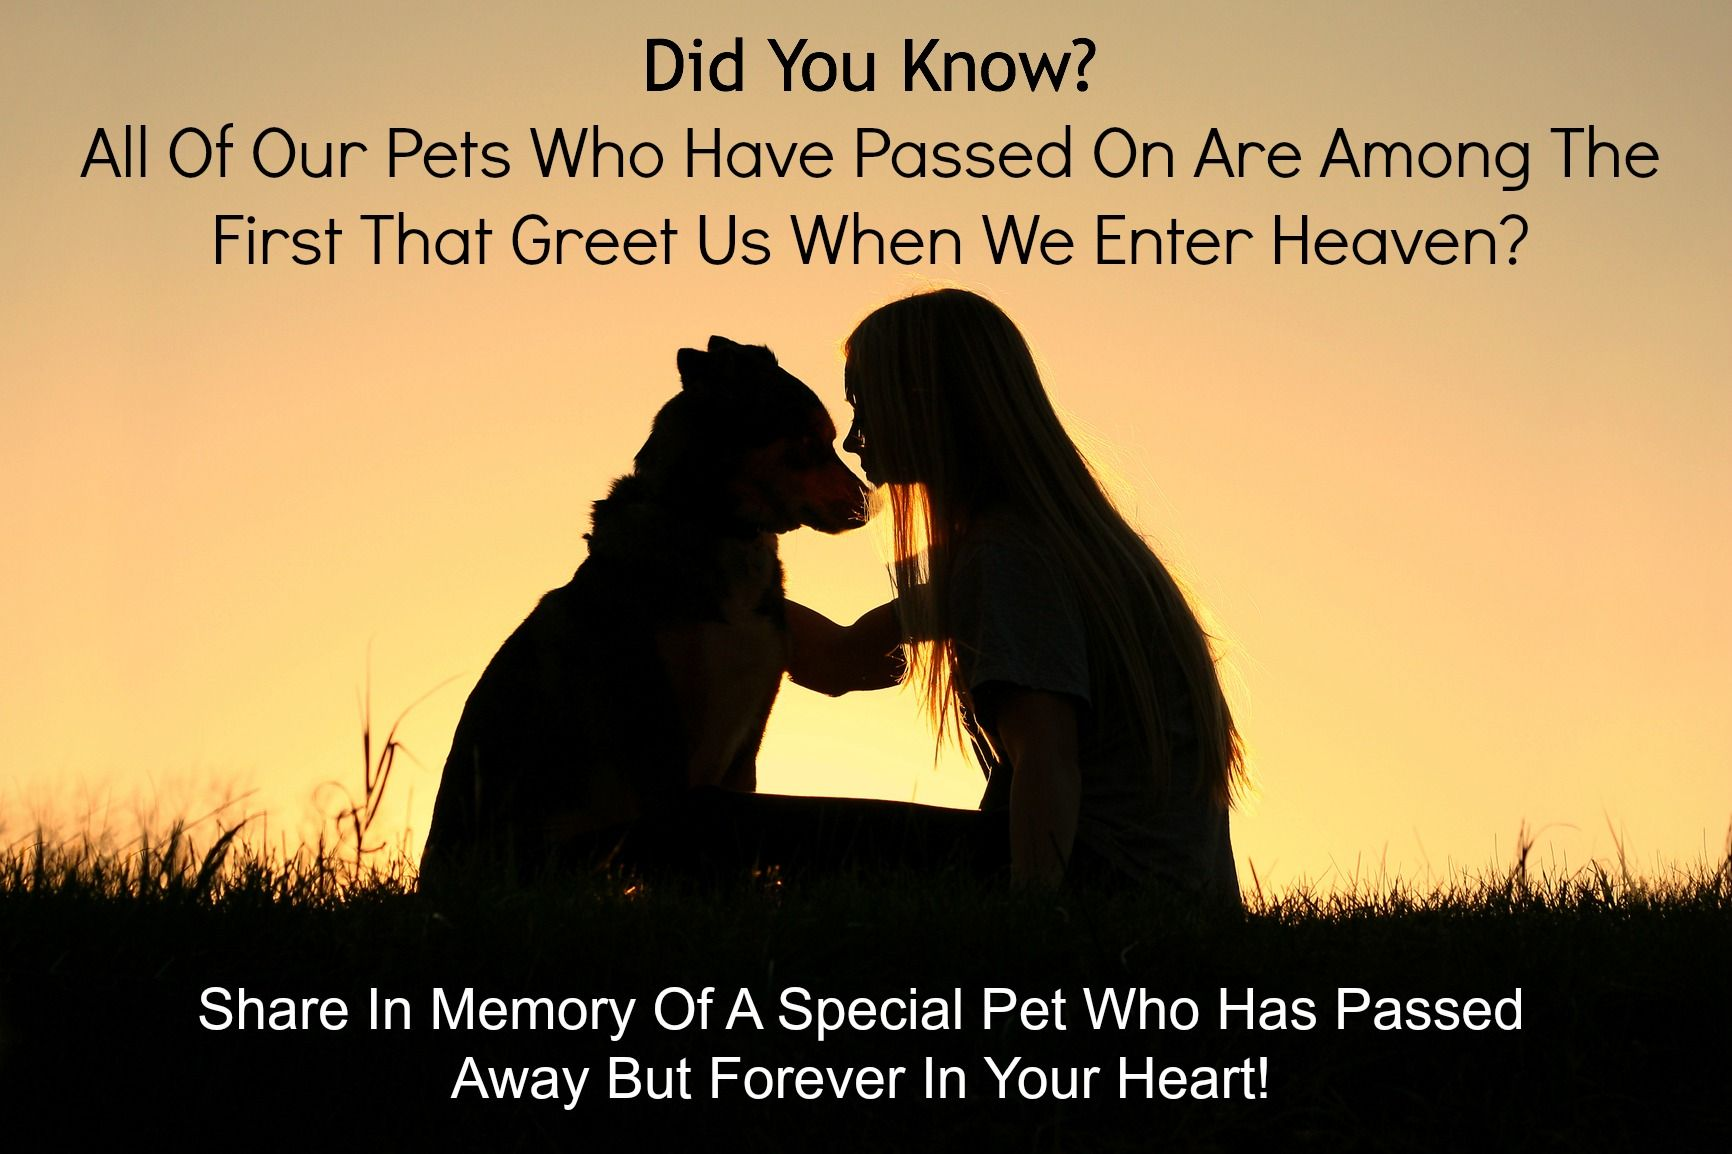 Its True All Pets Go To Heaven And They Are Among The First To Greet Us When We Make Our Transition It Is Amazing Tha Animals Dog Photoshoot Dog Body Language